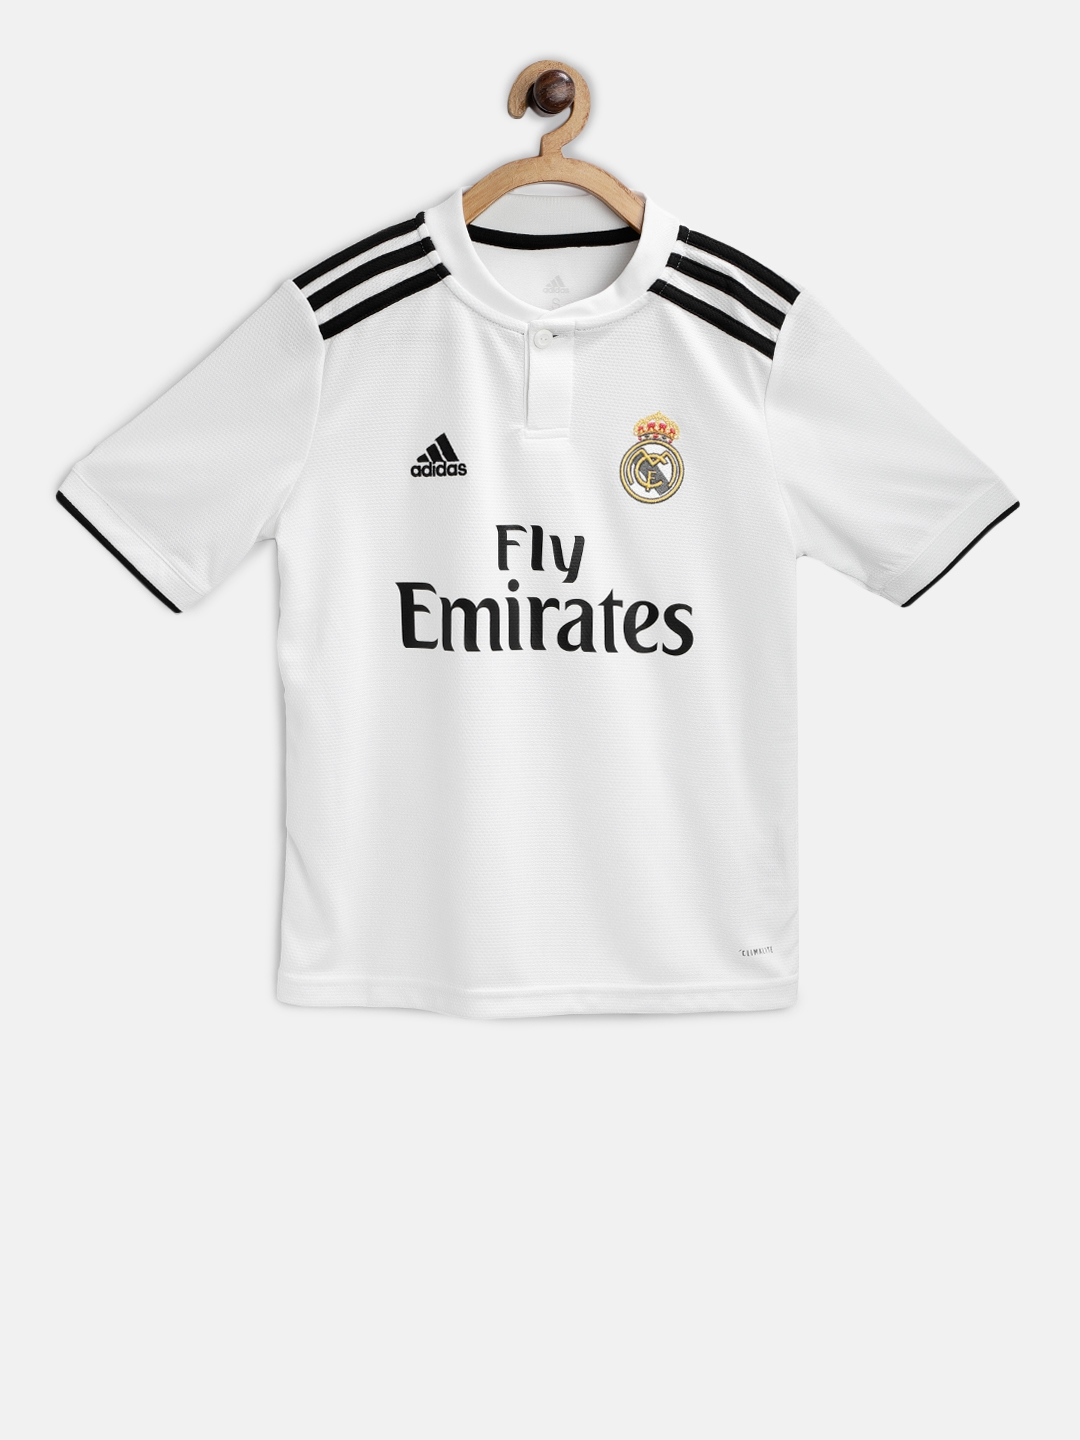 04f82c533 Buy Adidas Boys White Printed Real Madrid Home Football Jersey ...